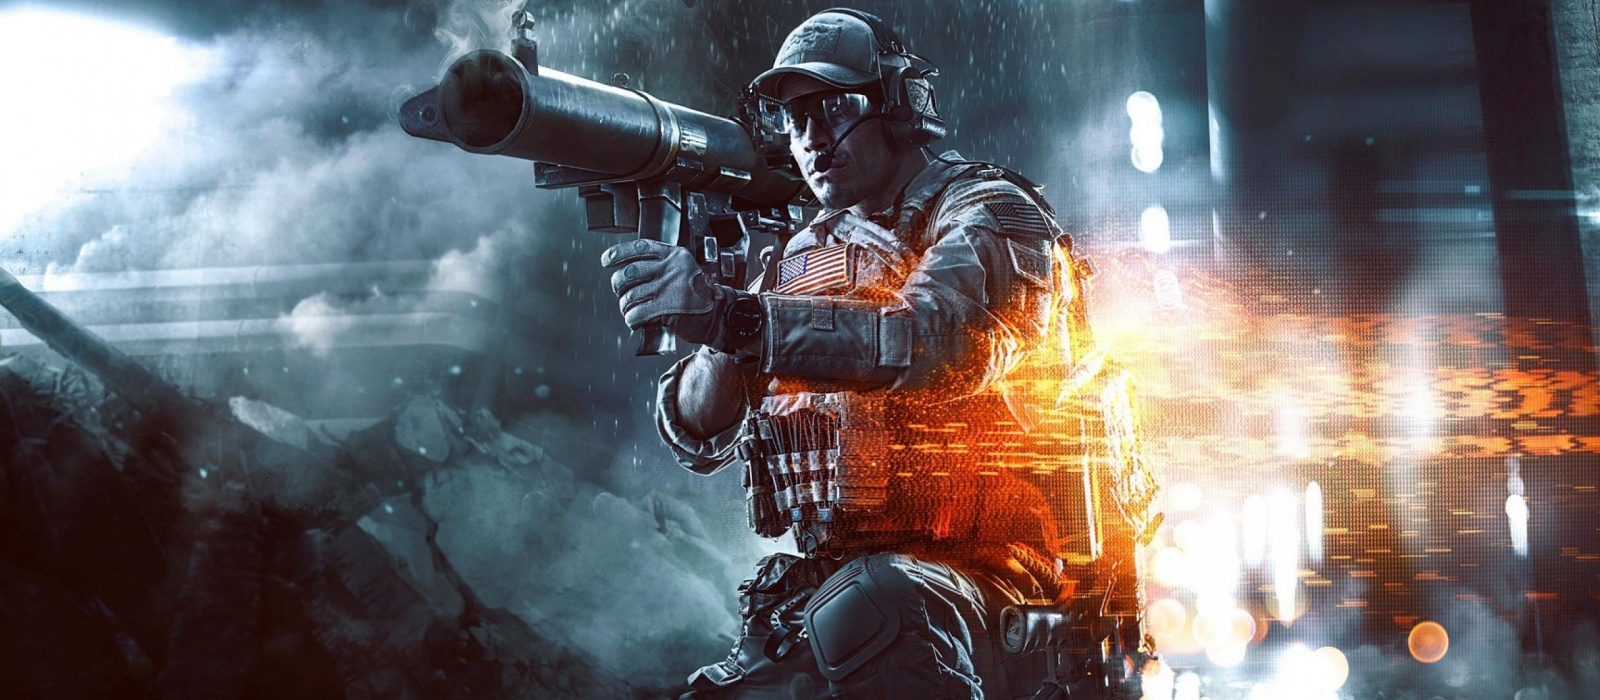 Part of the Battlefield 6 trailer leaked - you can hear the screams of soldiers and intense music